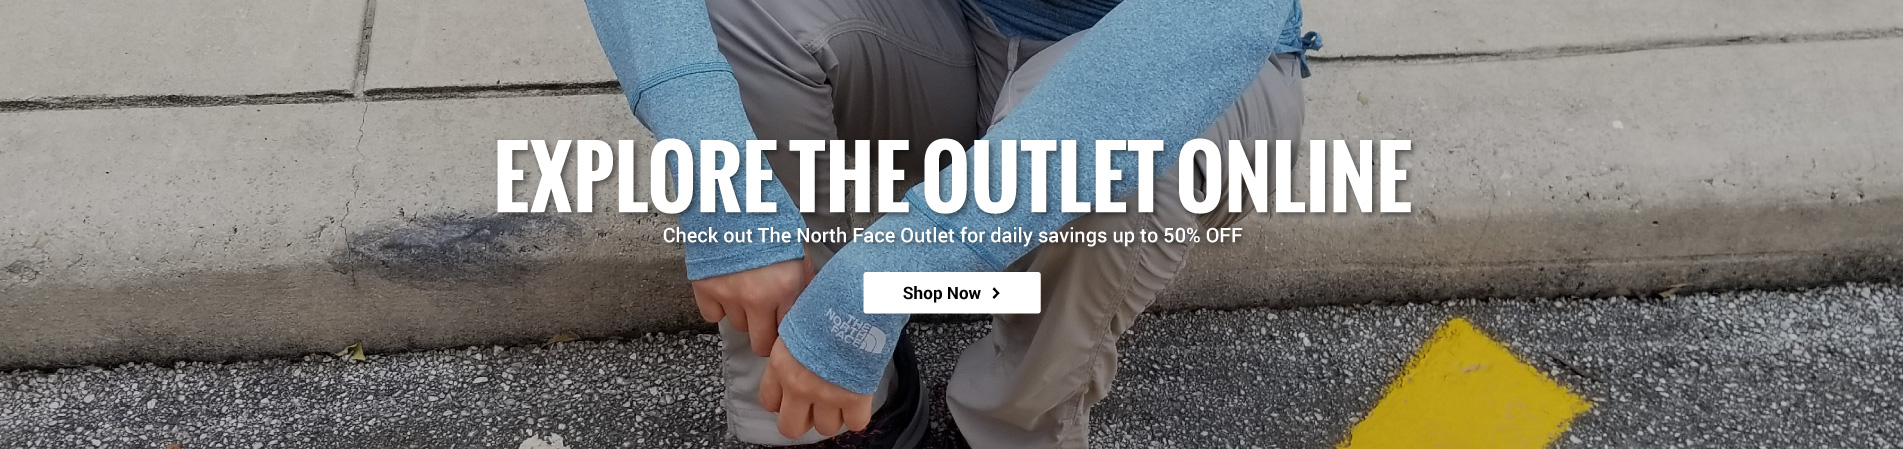 Save up to 50% off The North Face when you shop the Outlet